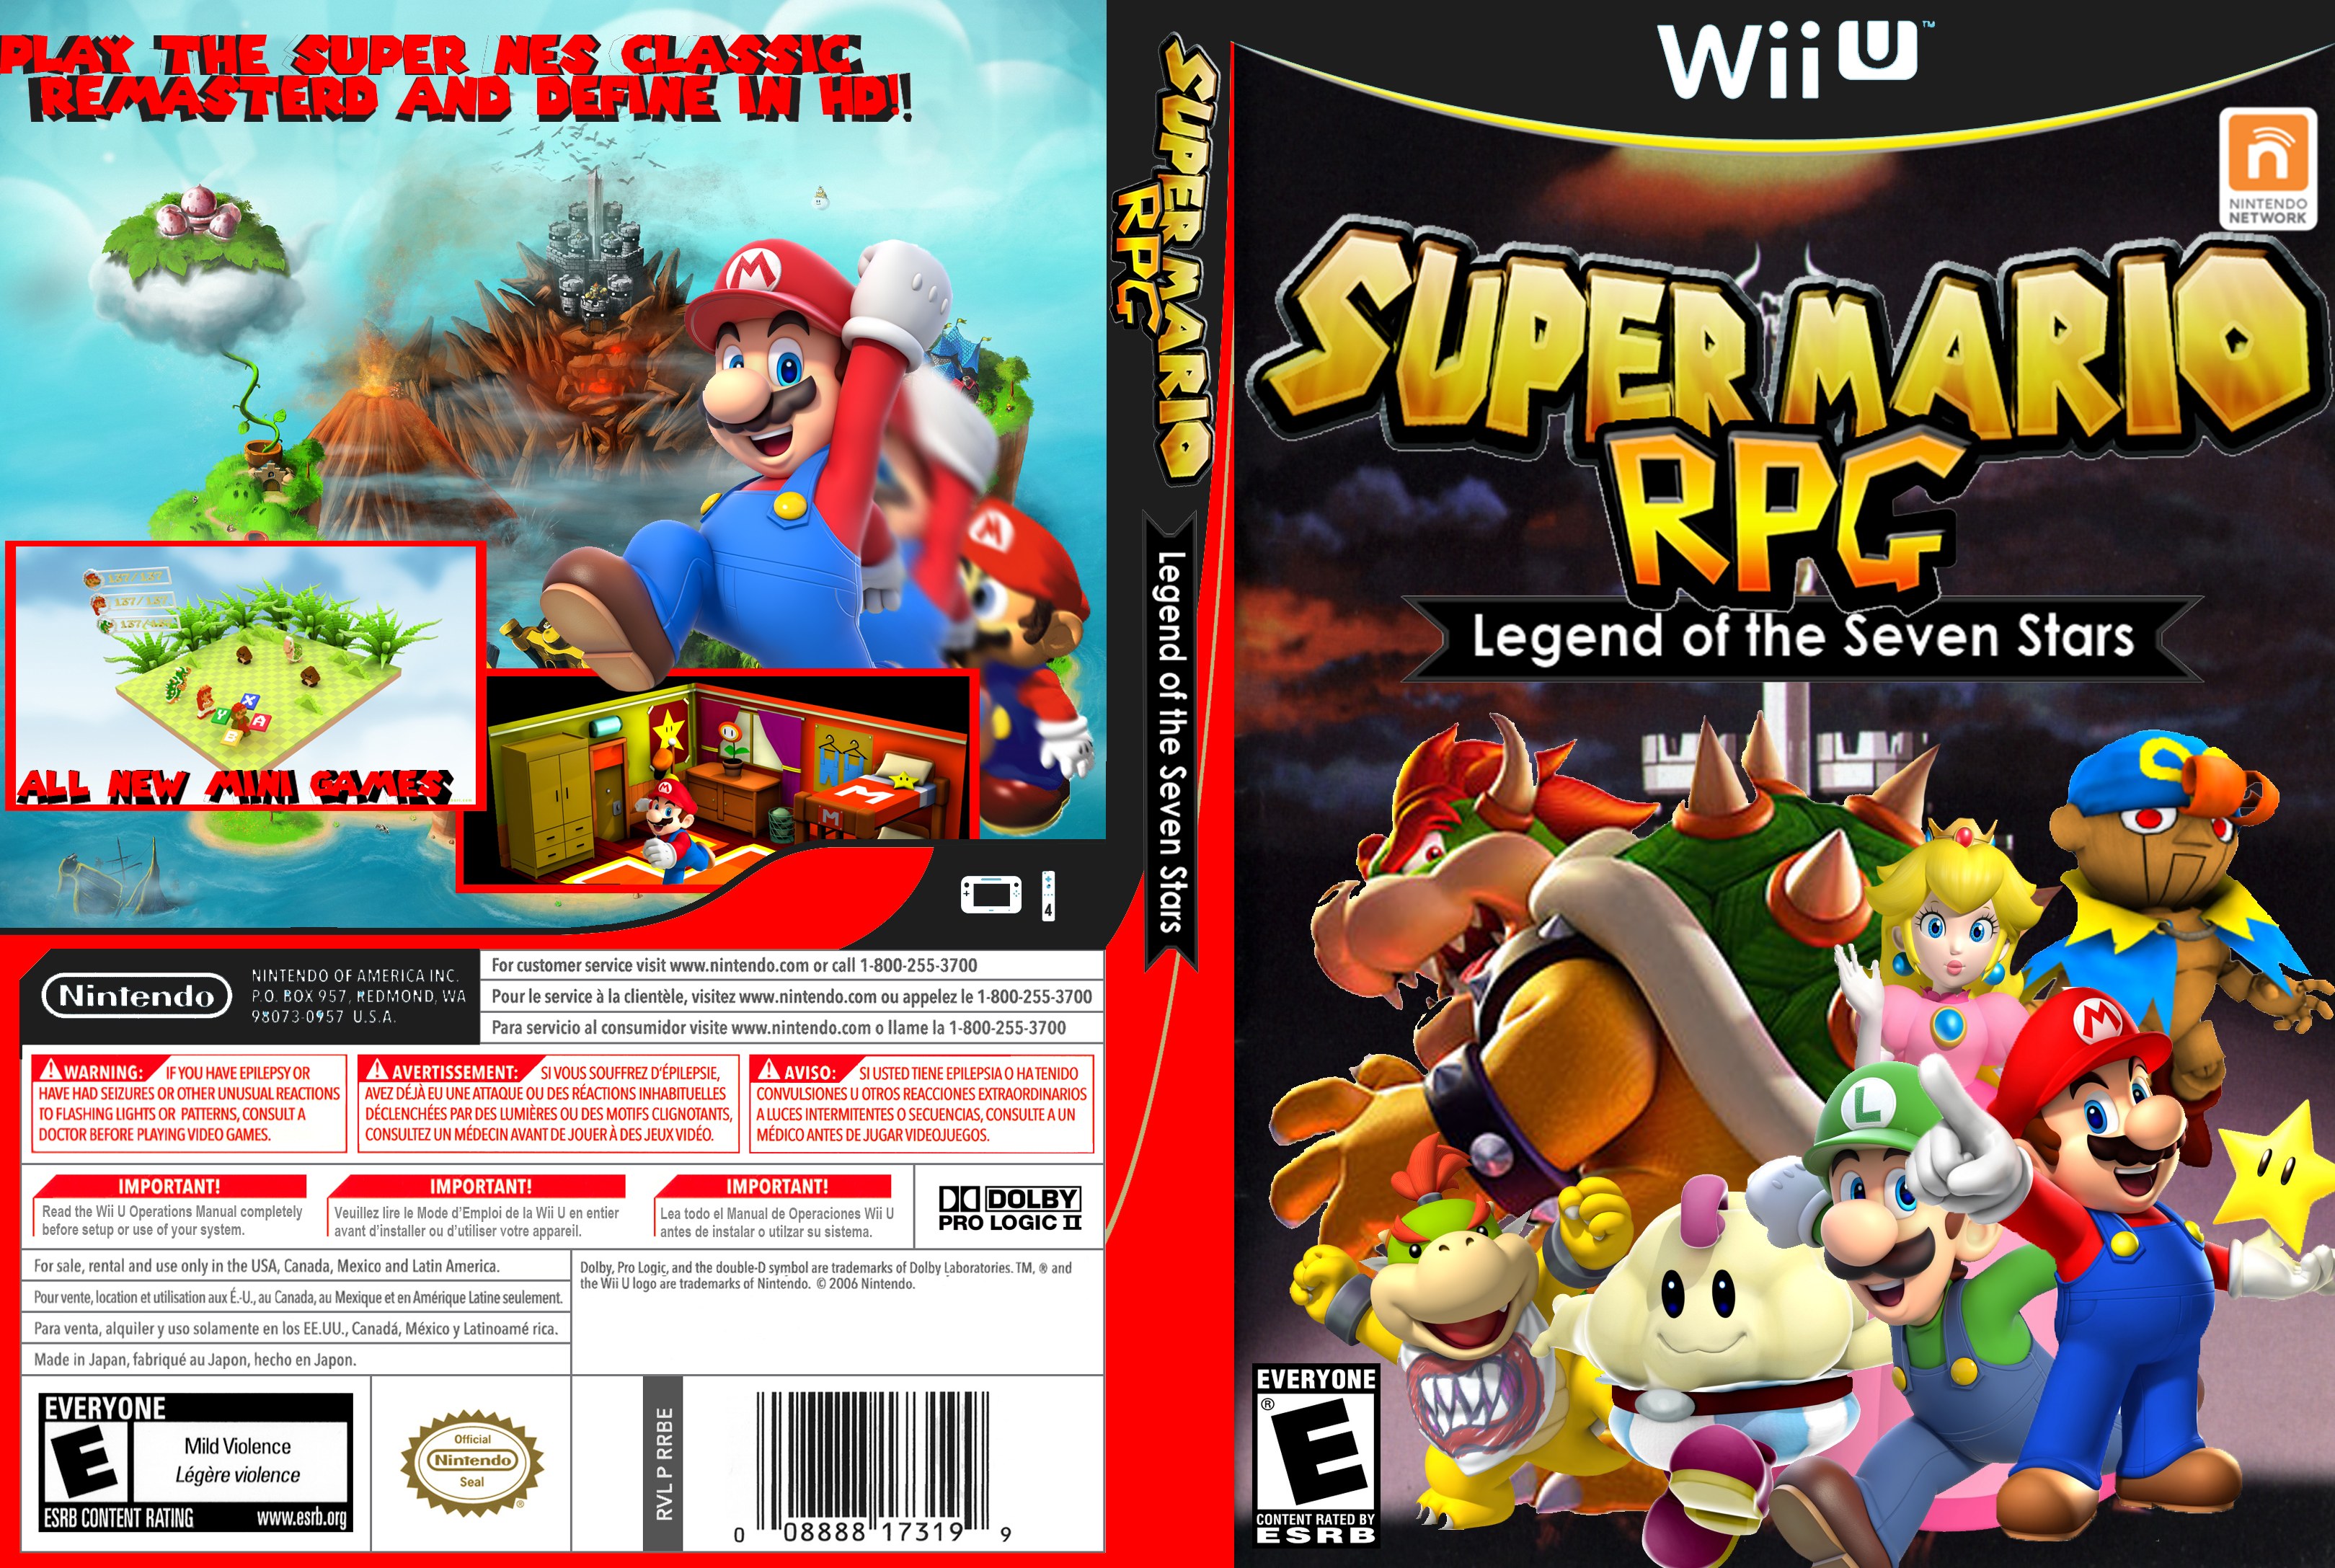 Super Mario RPG Lengend of the seven stars wii u by